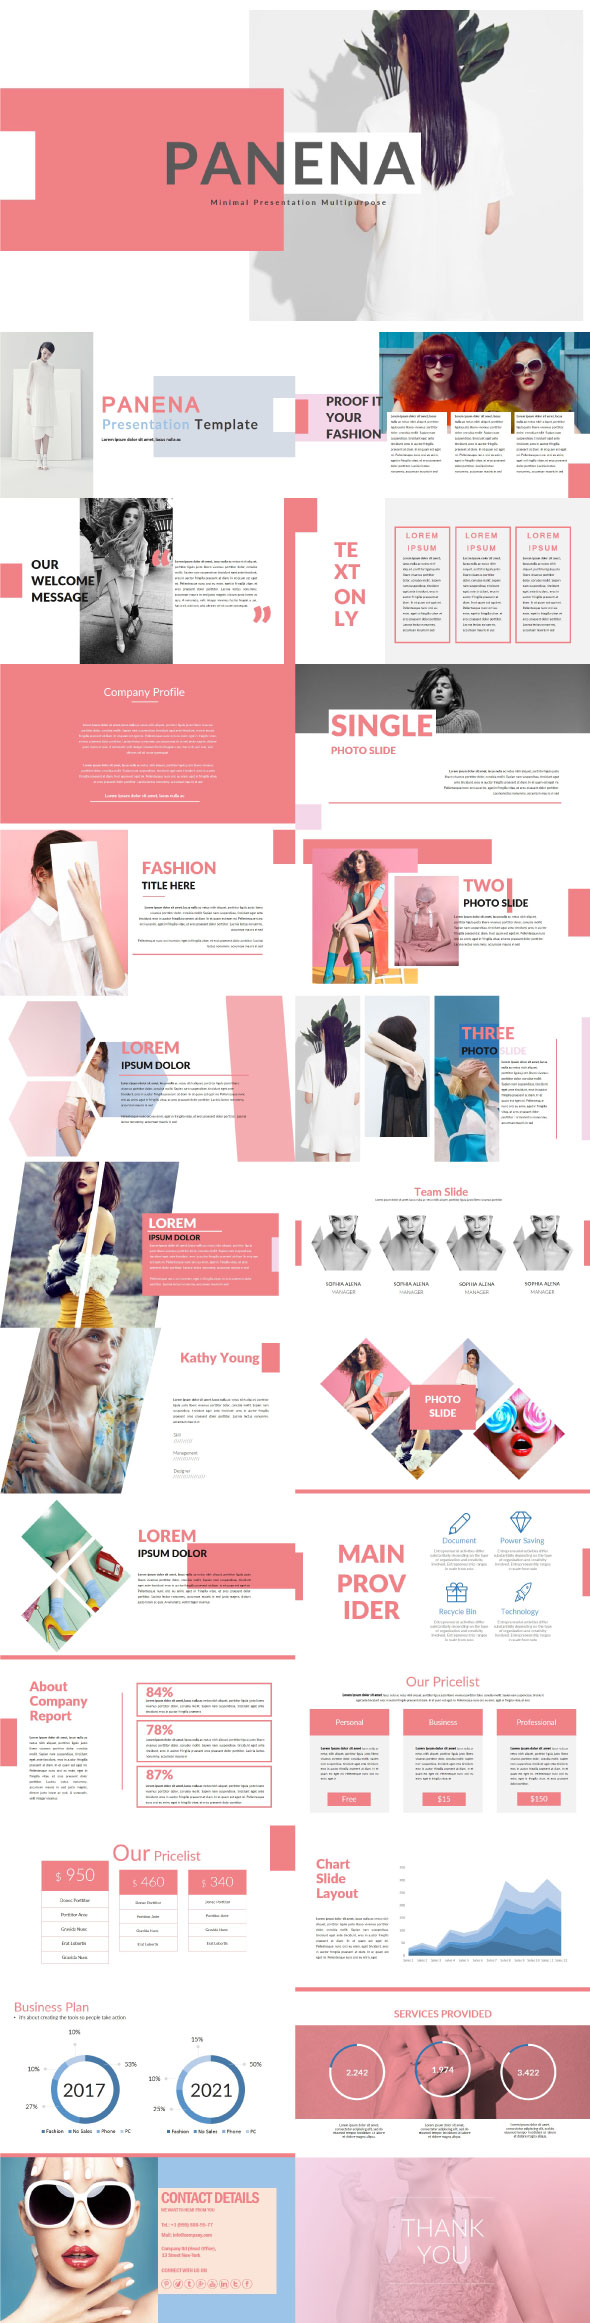 Panena Google Slide Template - Google Slides Presentation Templates